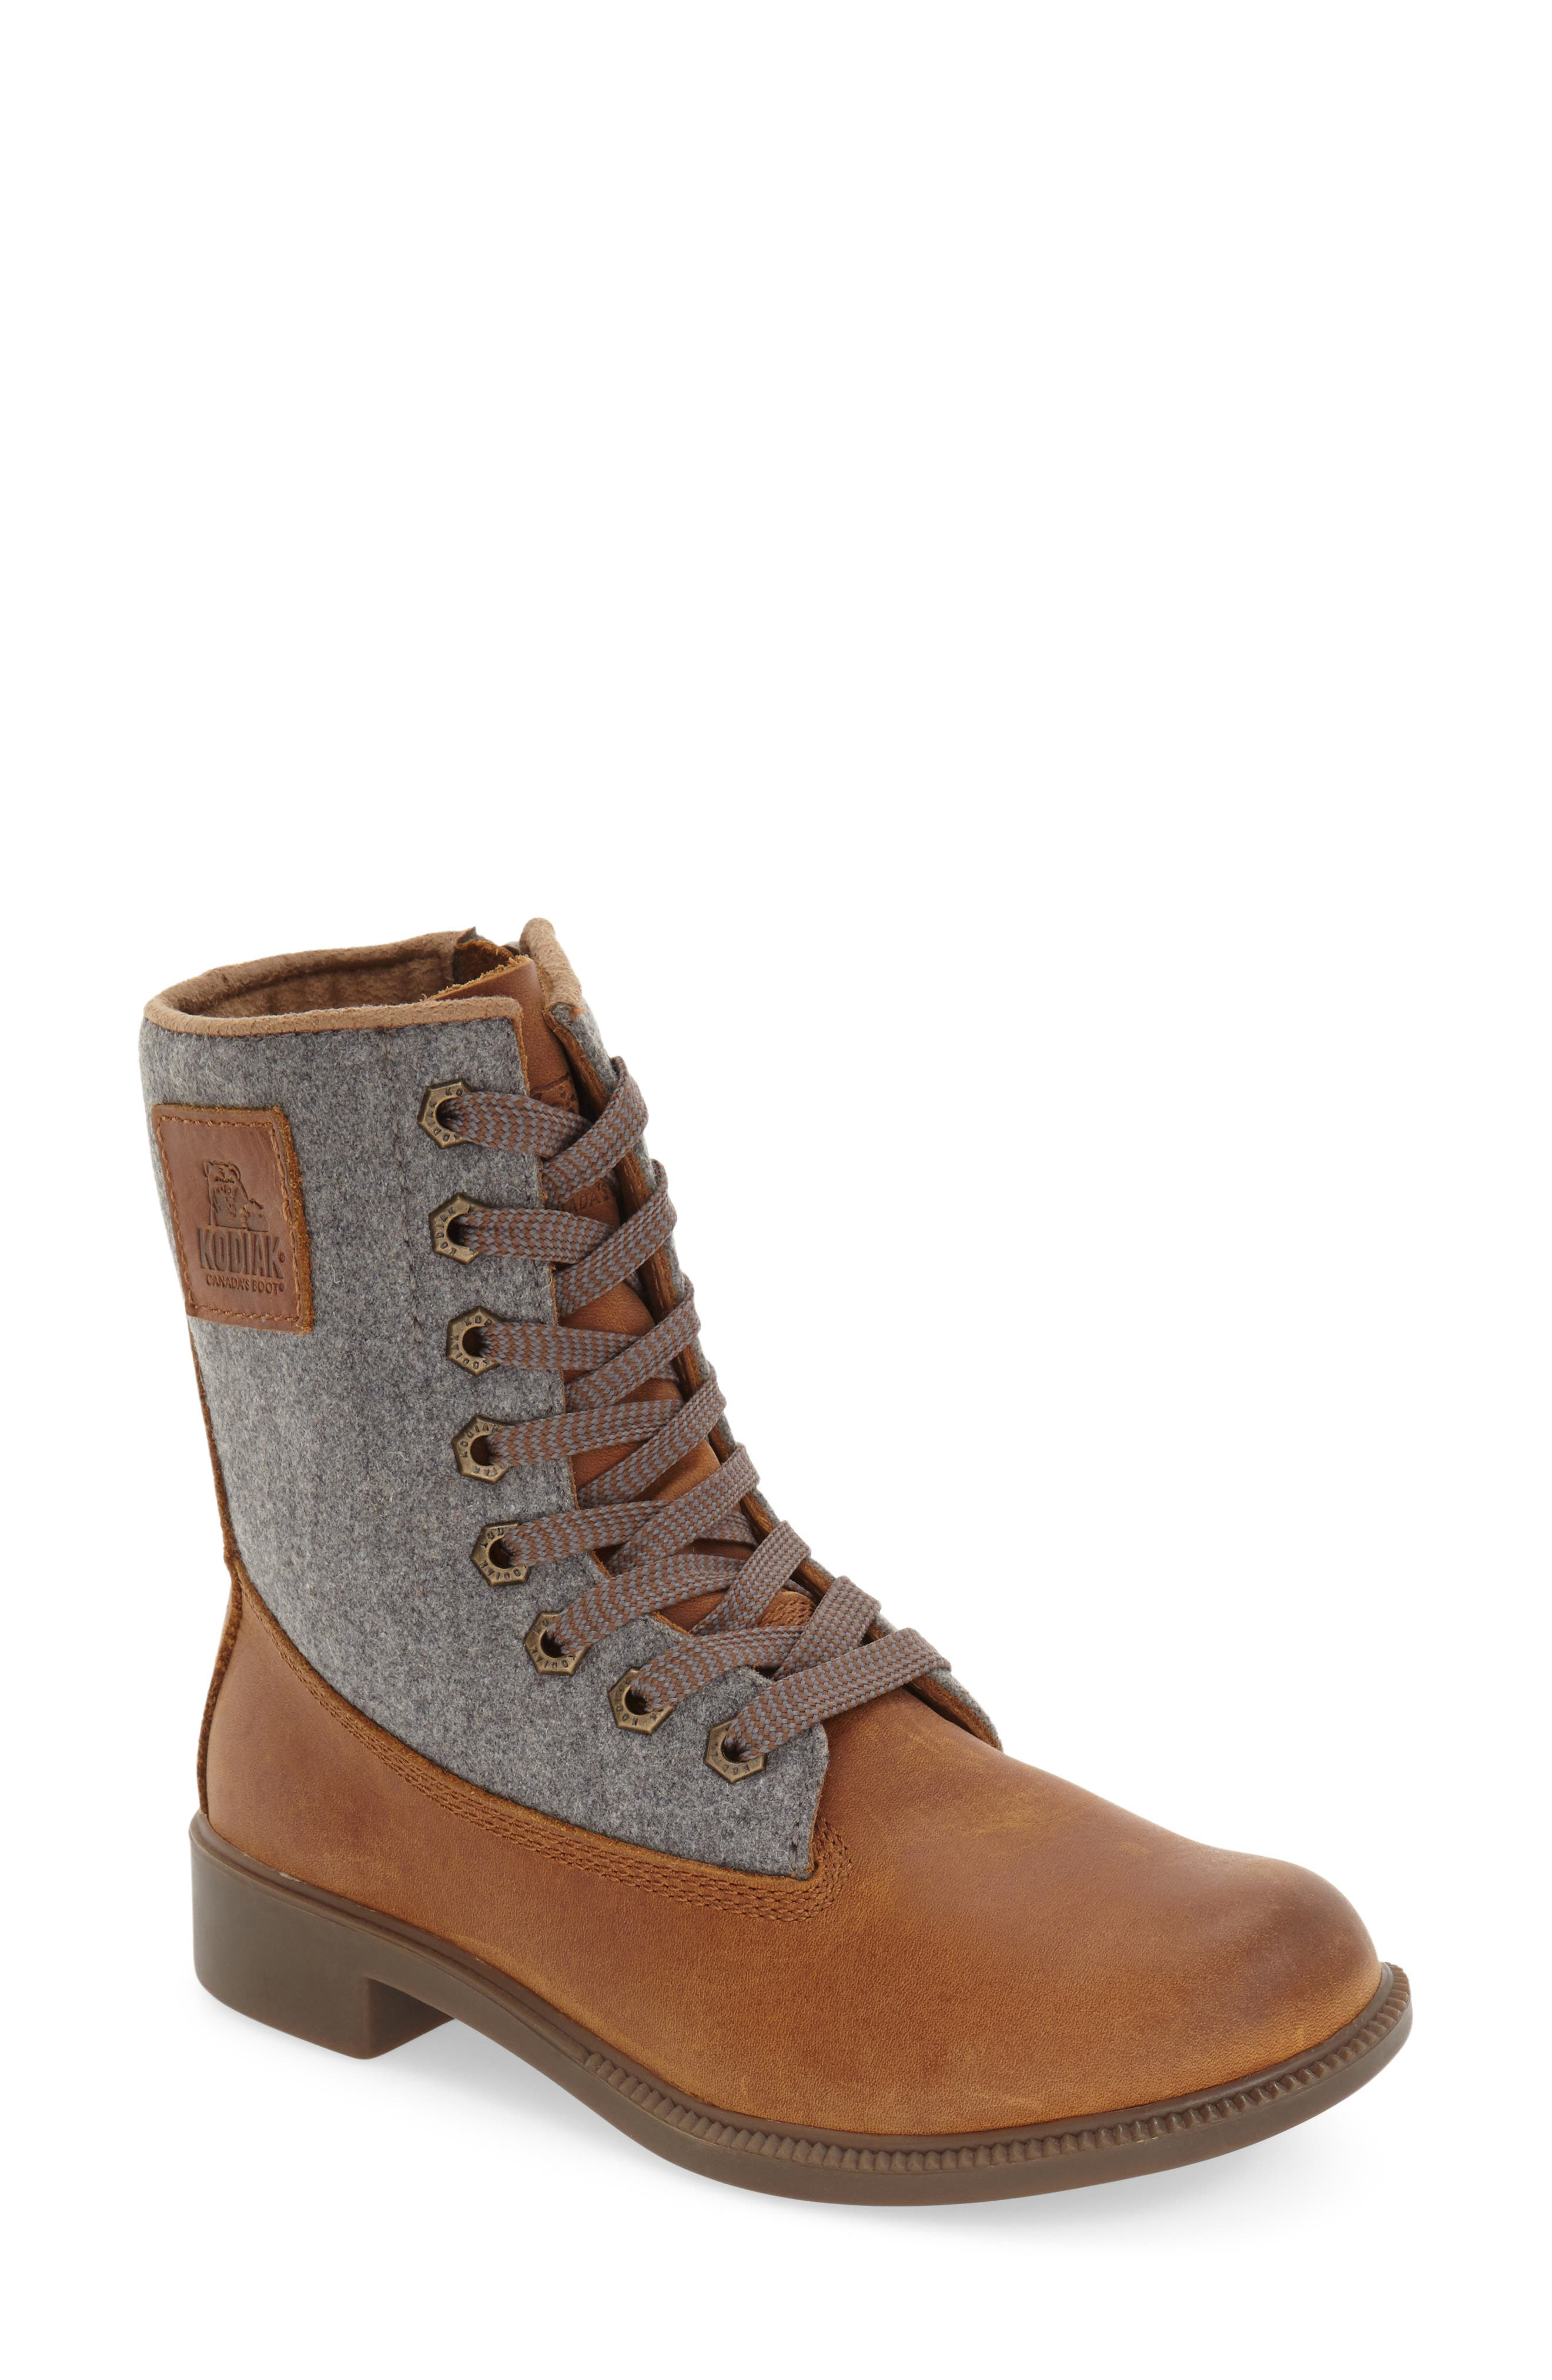 'Addison' Waterproof Insulated Zip Boot,                             Main thumbnail 1, color,                             Caramel/ Grey Leather